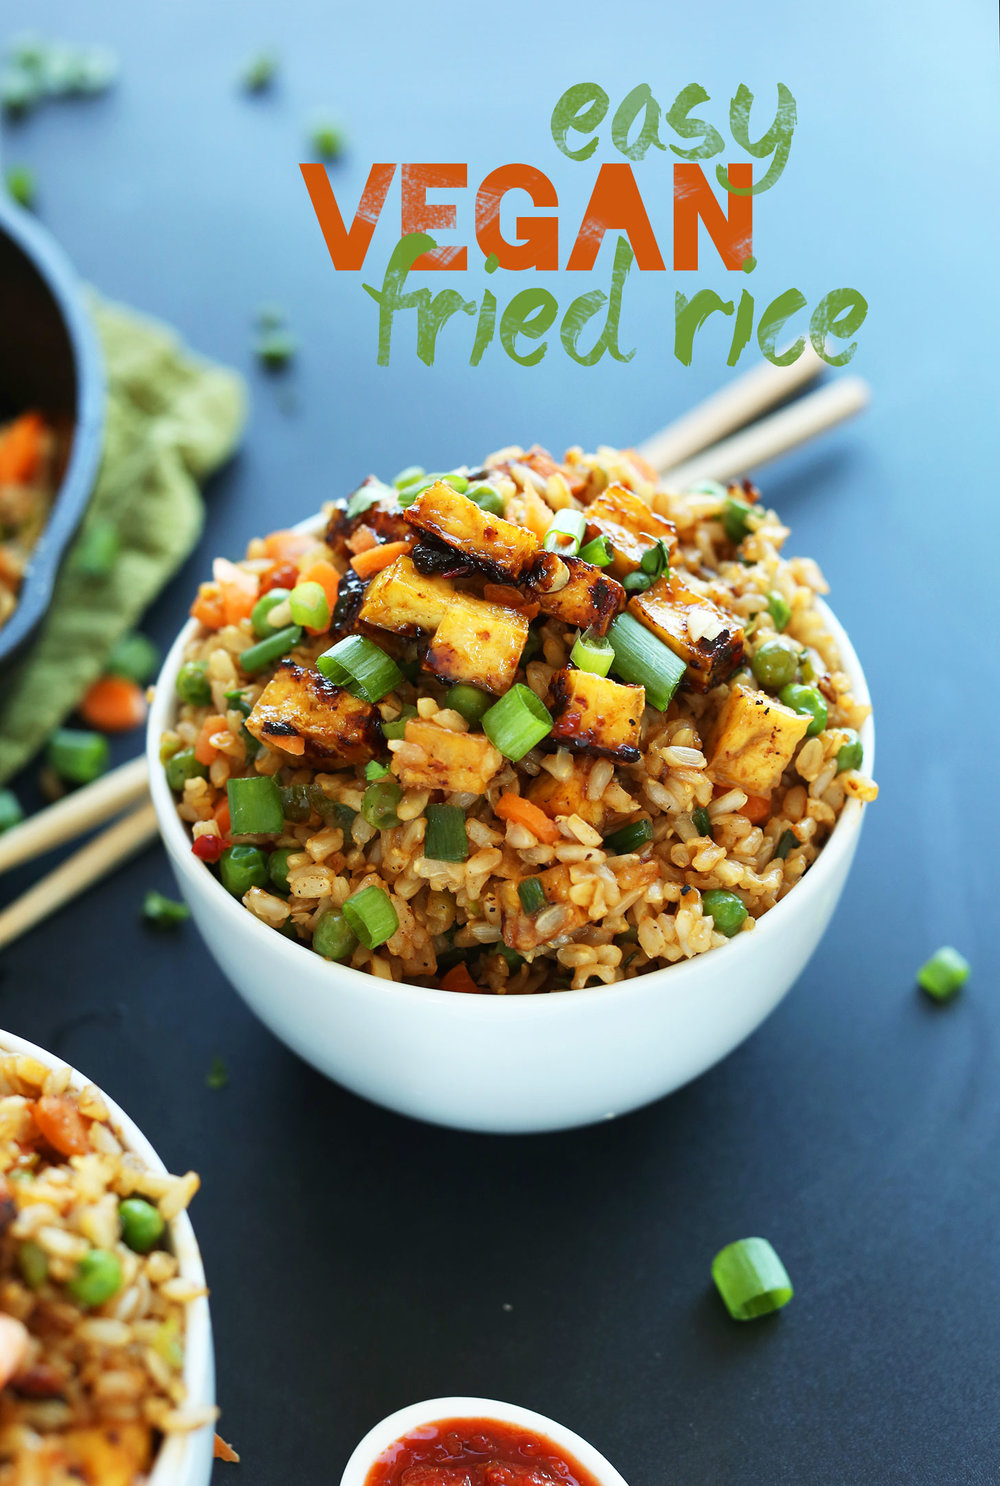 AMAZING-HEALTHY-Vegan-Fried-Rice-with-Crispy-Tofu-vegan-glutenfree-recipe-chinese-friedrice-minimalistbaker-plantbased.jpg